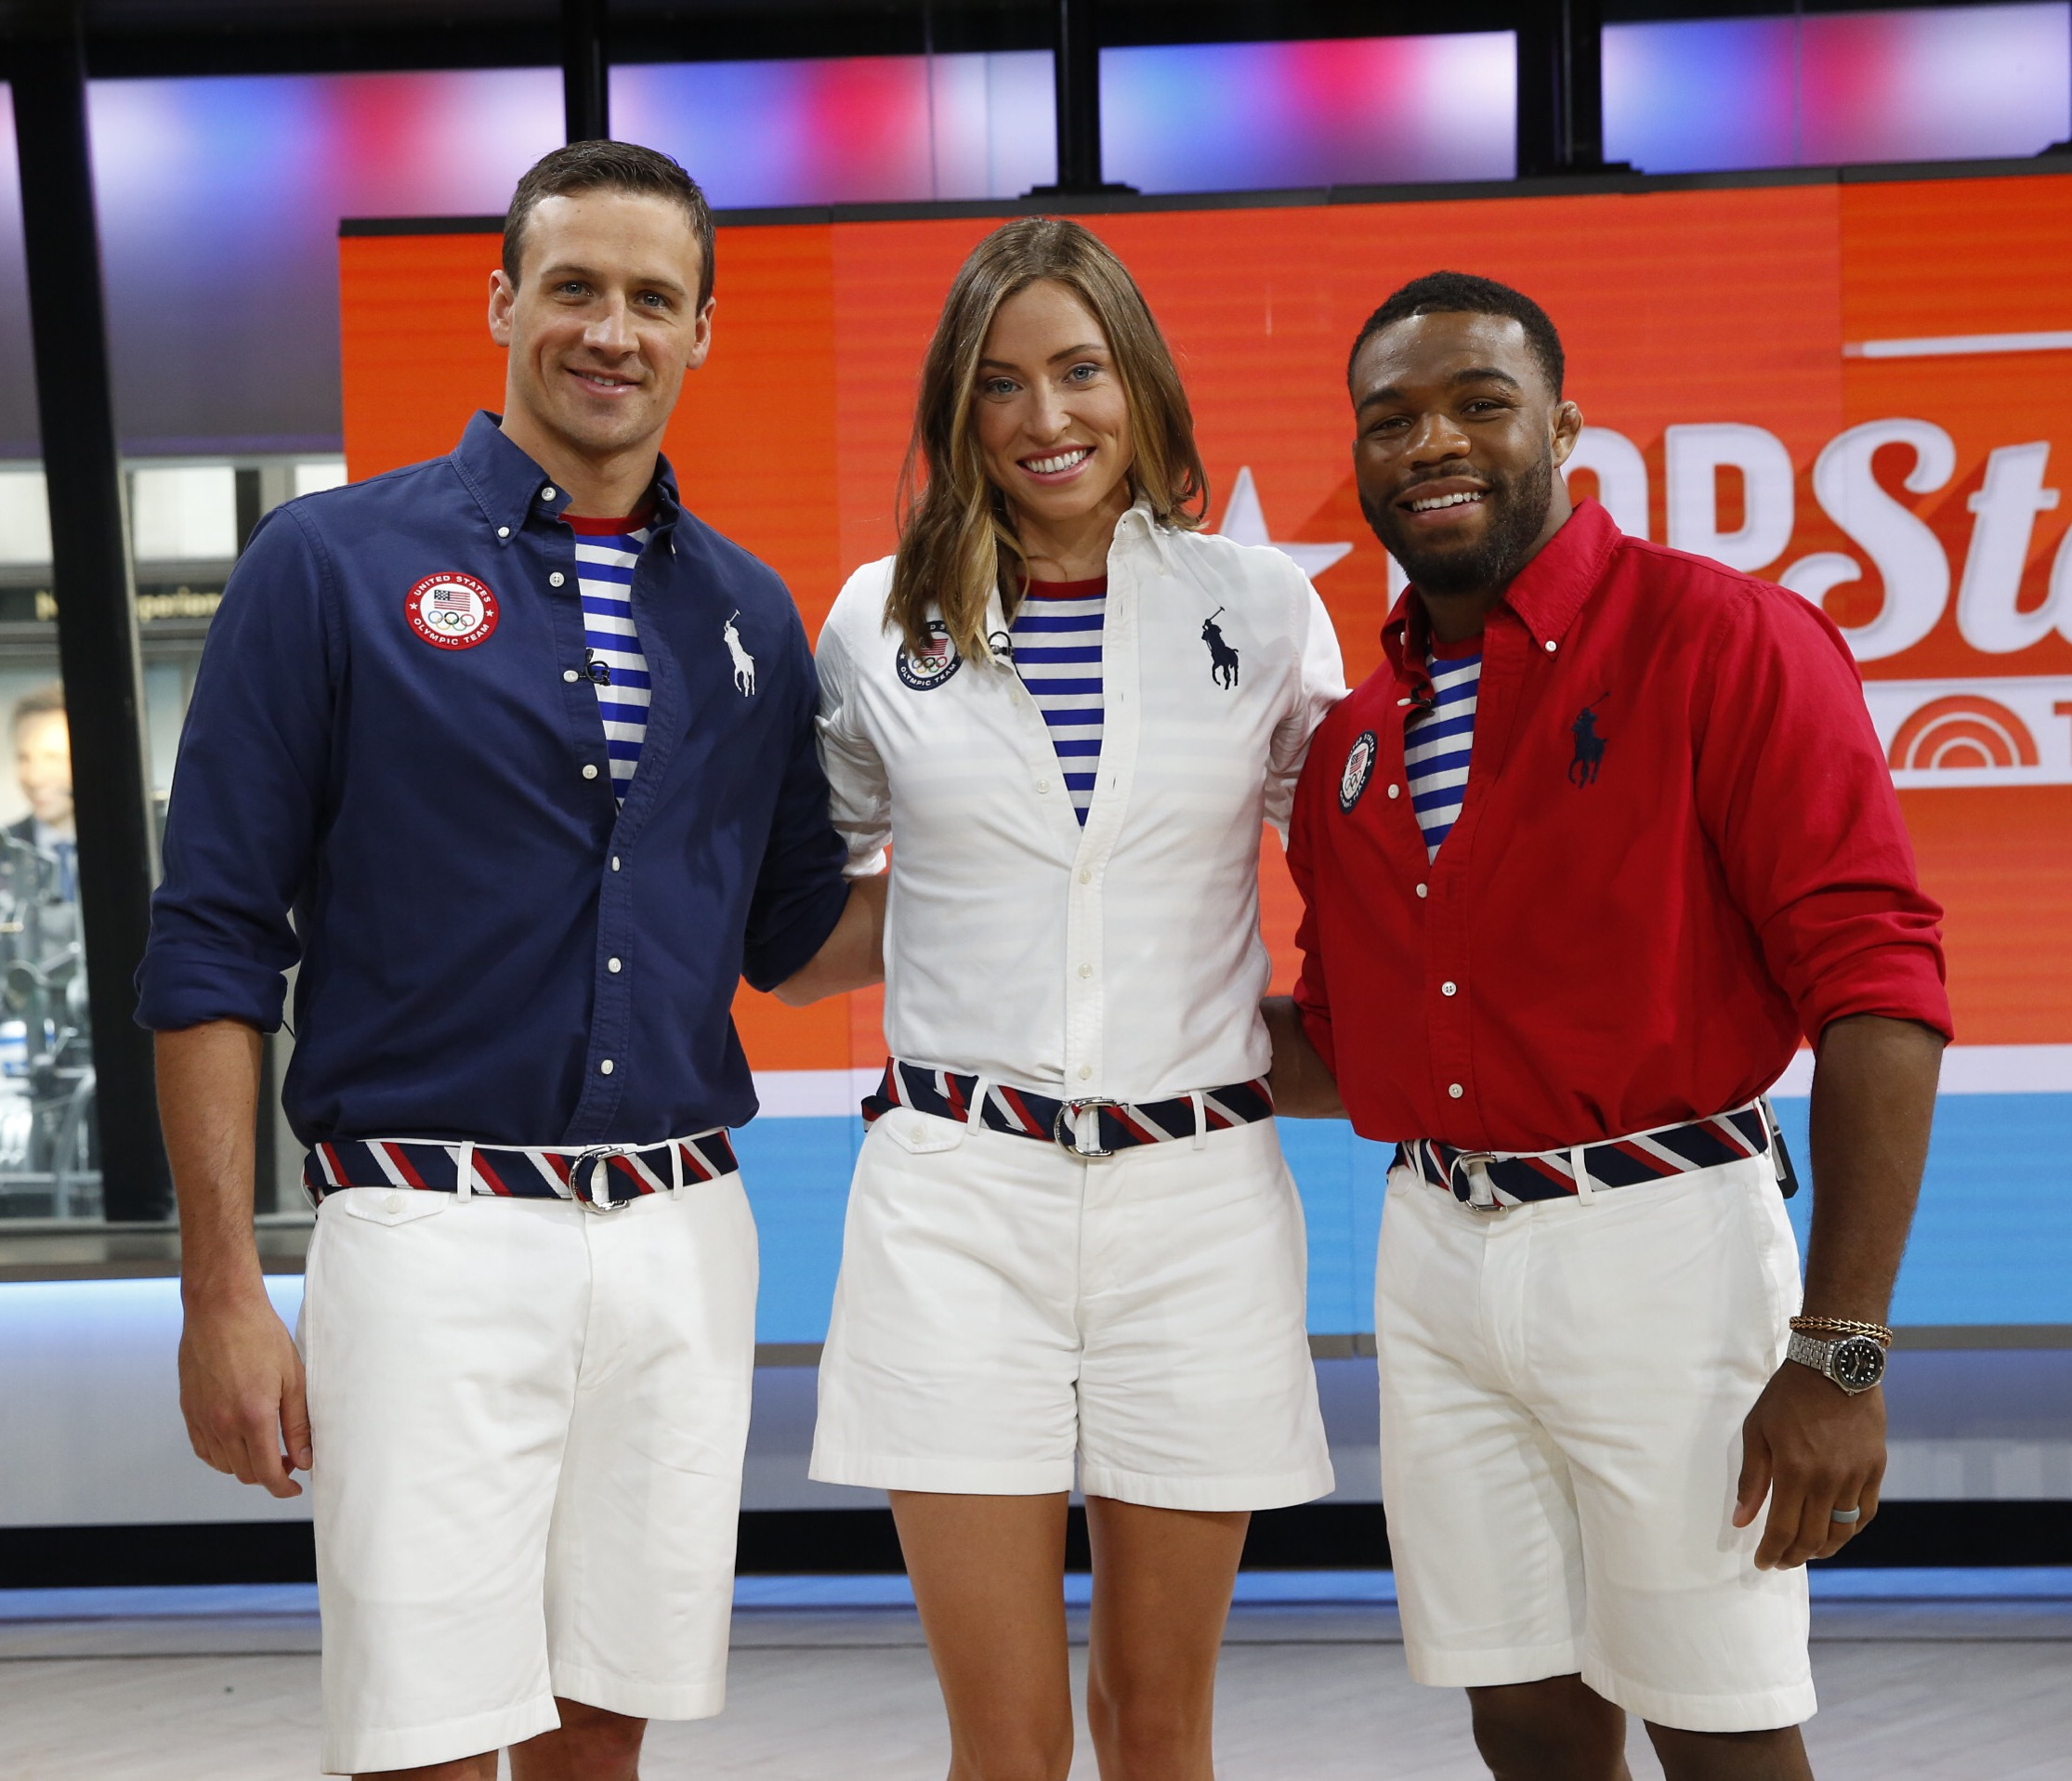 (From left to right) Ryan Lochte, Haley Anderson, and Jordan Burroughs wearing Team USA's closing ceremony uniforms.